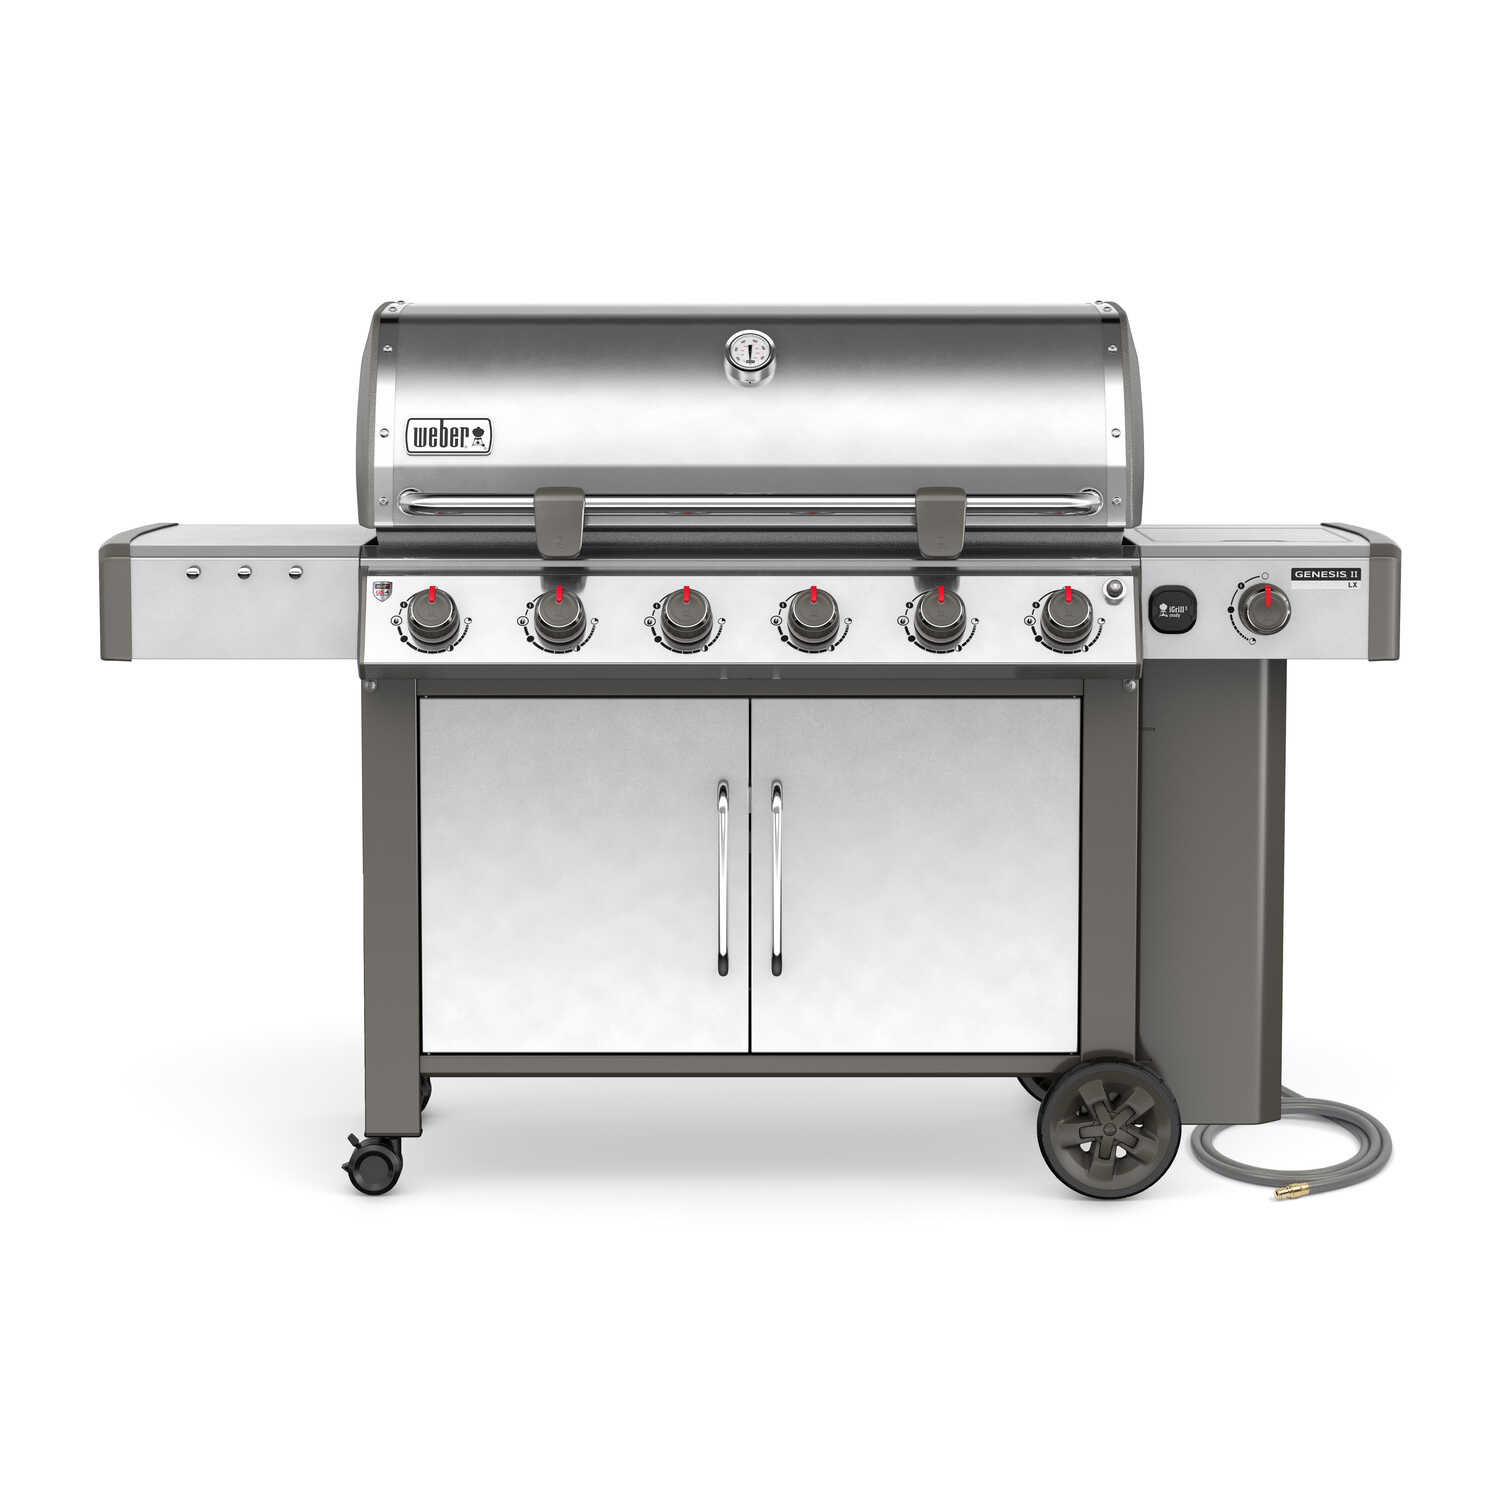 Weber  Genesis II LX S-640  6 burners Natural Gas  Grill  Stainless Steel  72000 BTU